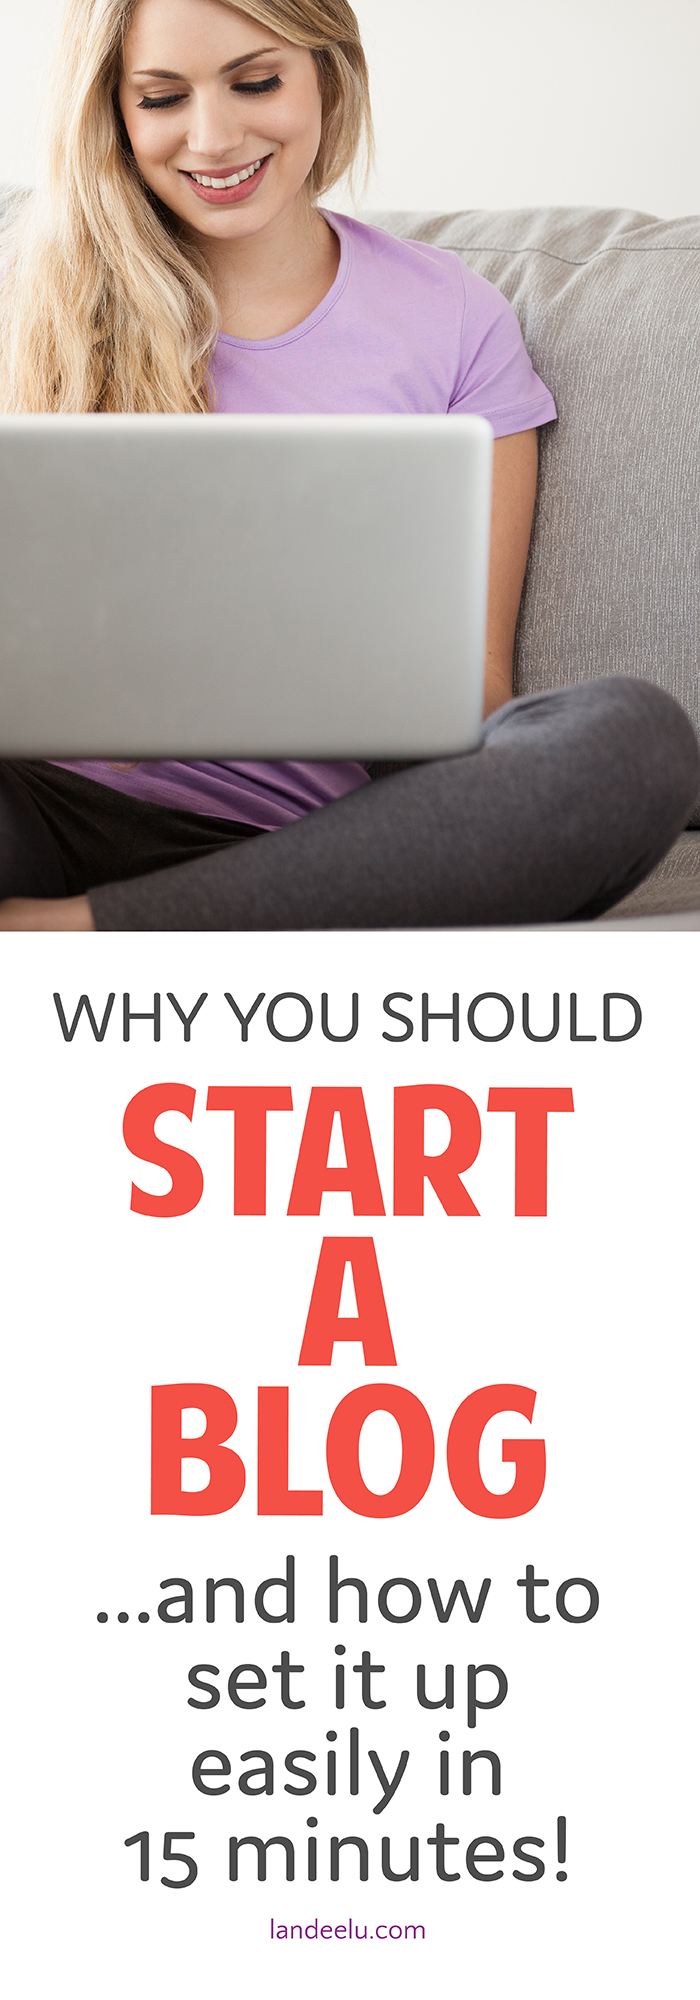 Learn the quick & easy way to start a blog! Takes about 15 minutes!